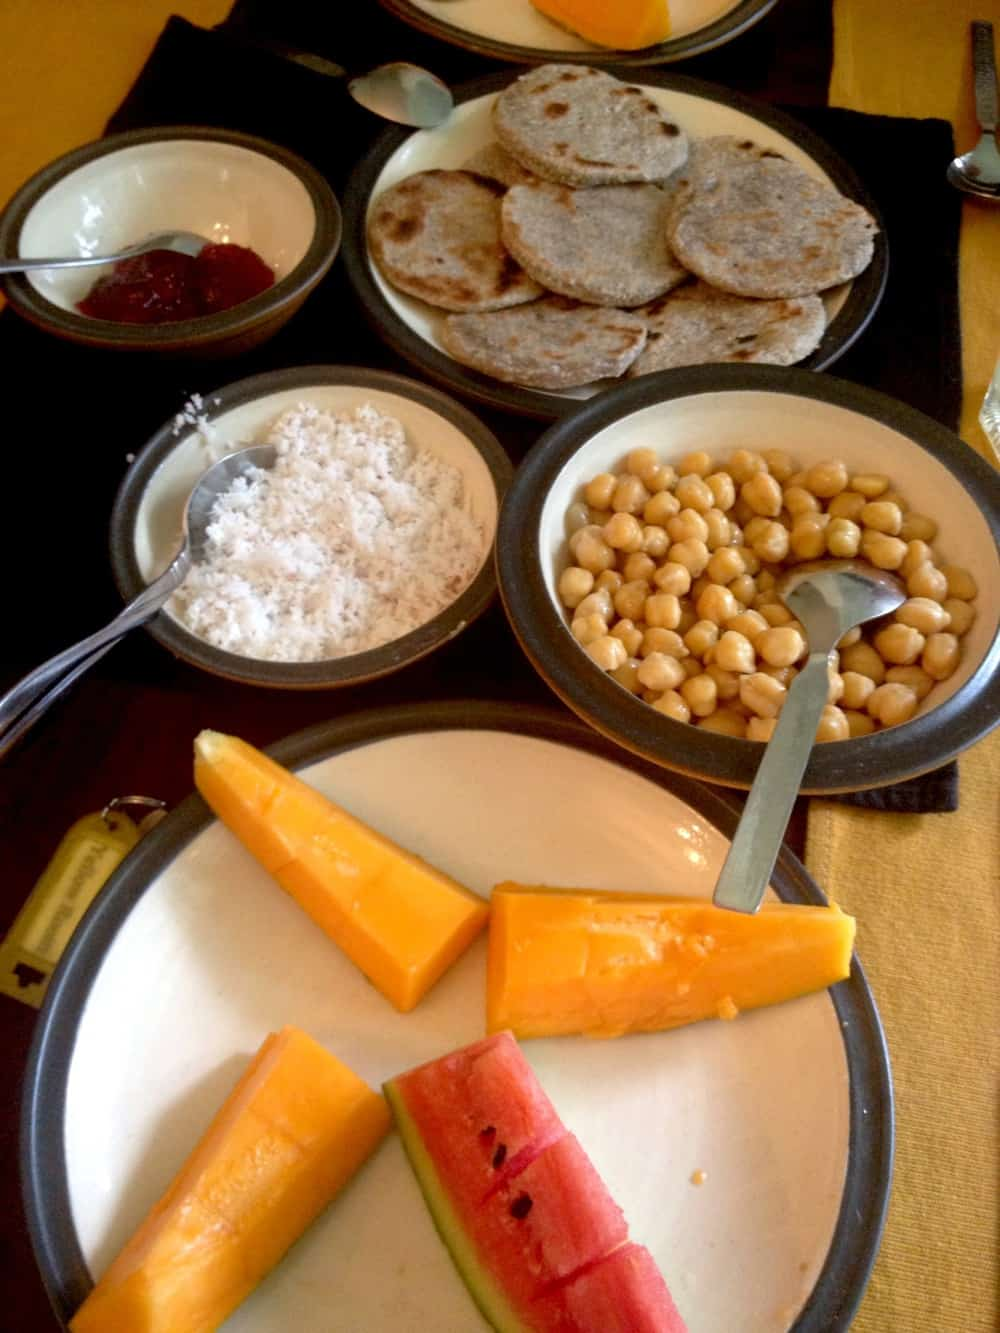 Breakfast - Strawberry jam, coconut flakes, chickpeas, fruits and pancakes.